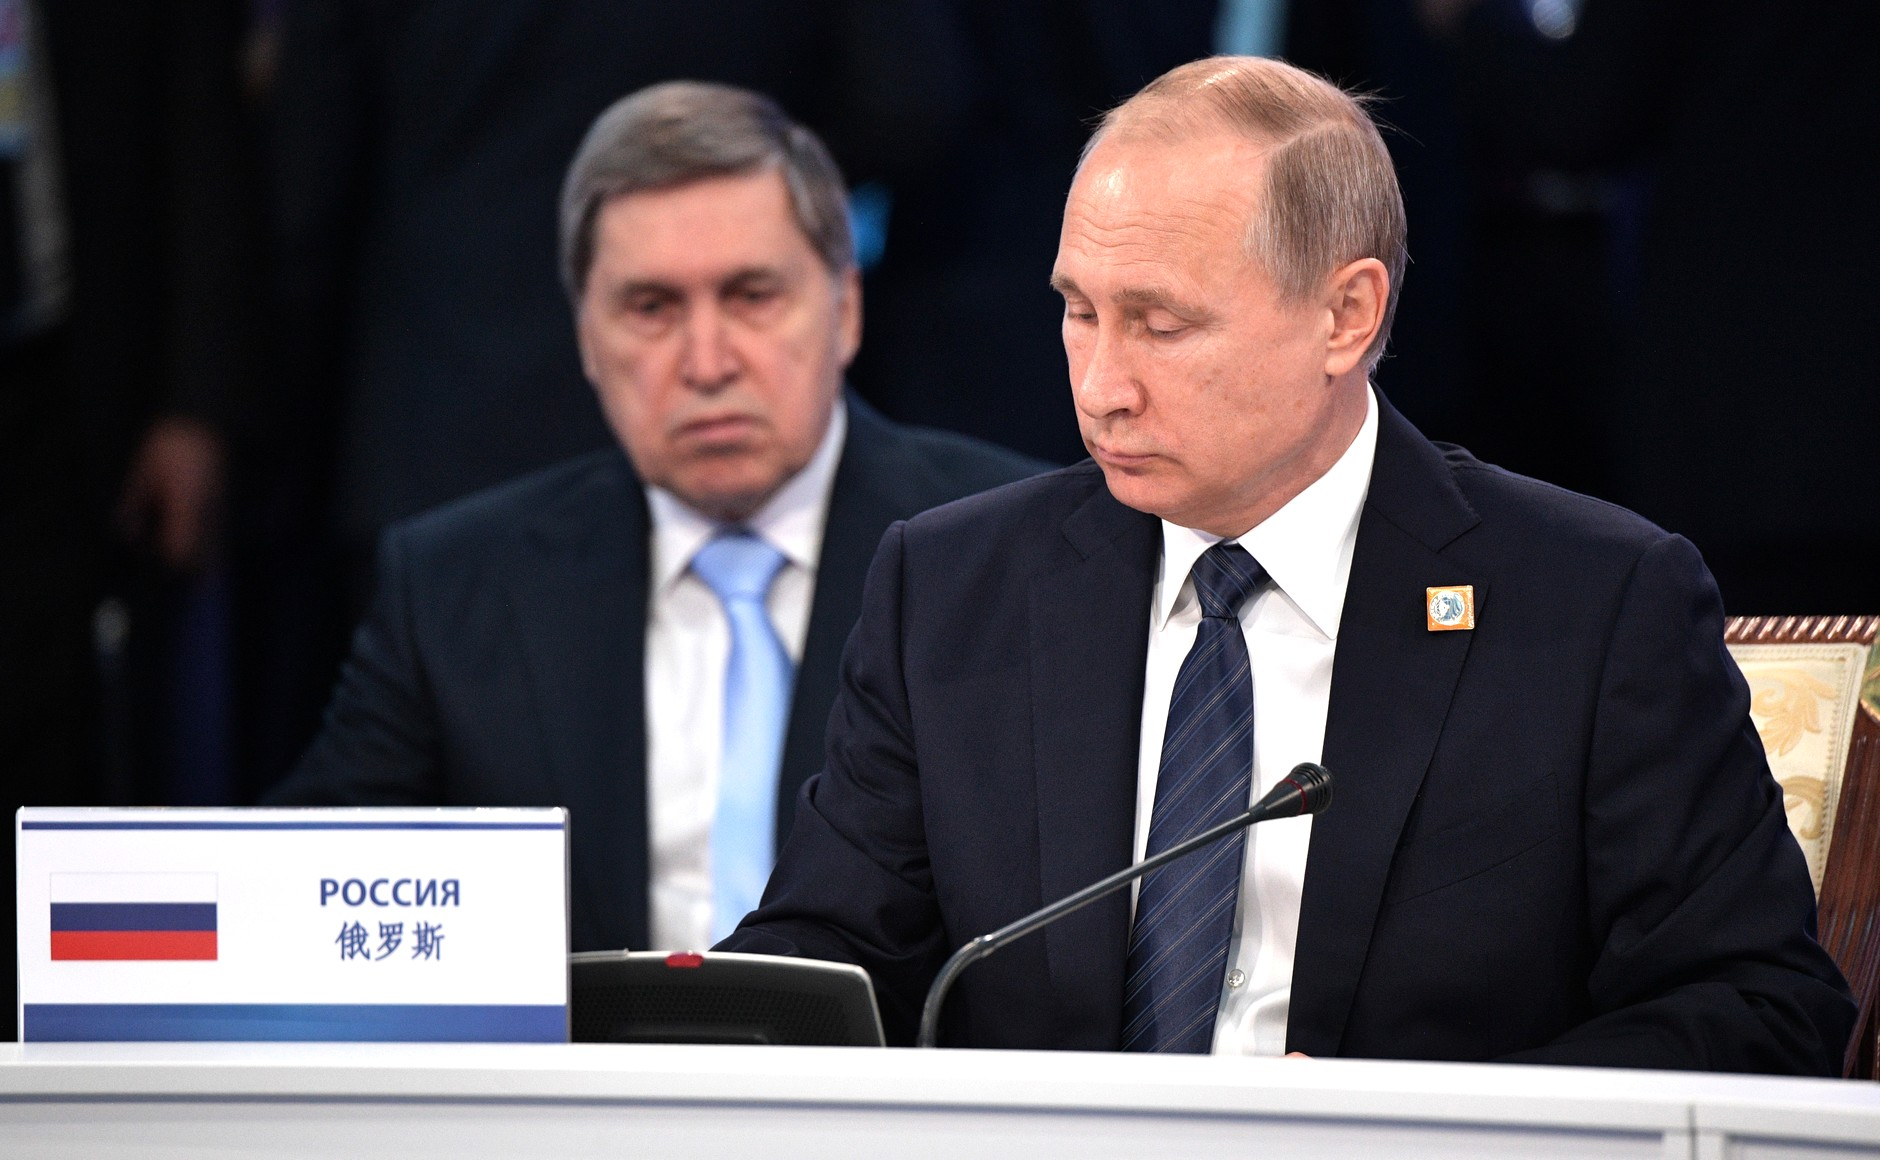 Vladimir Putin: Only fair and meaningful cooperation between various countries may help defeat terrorism.